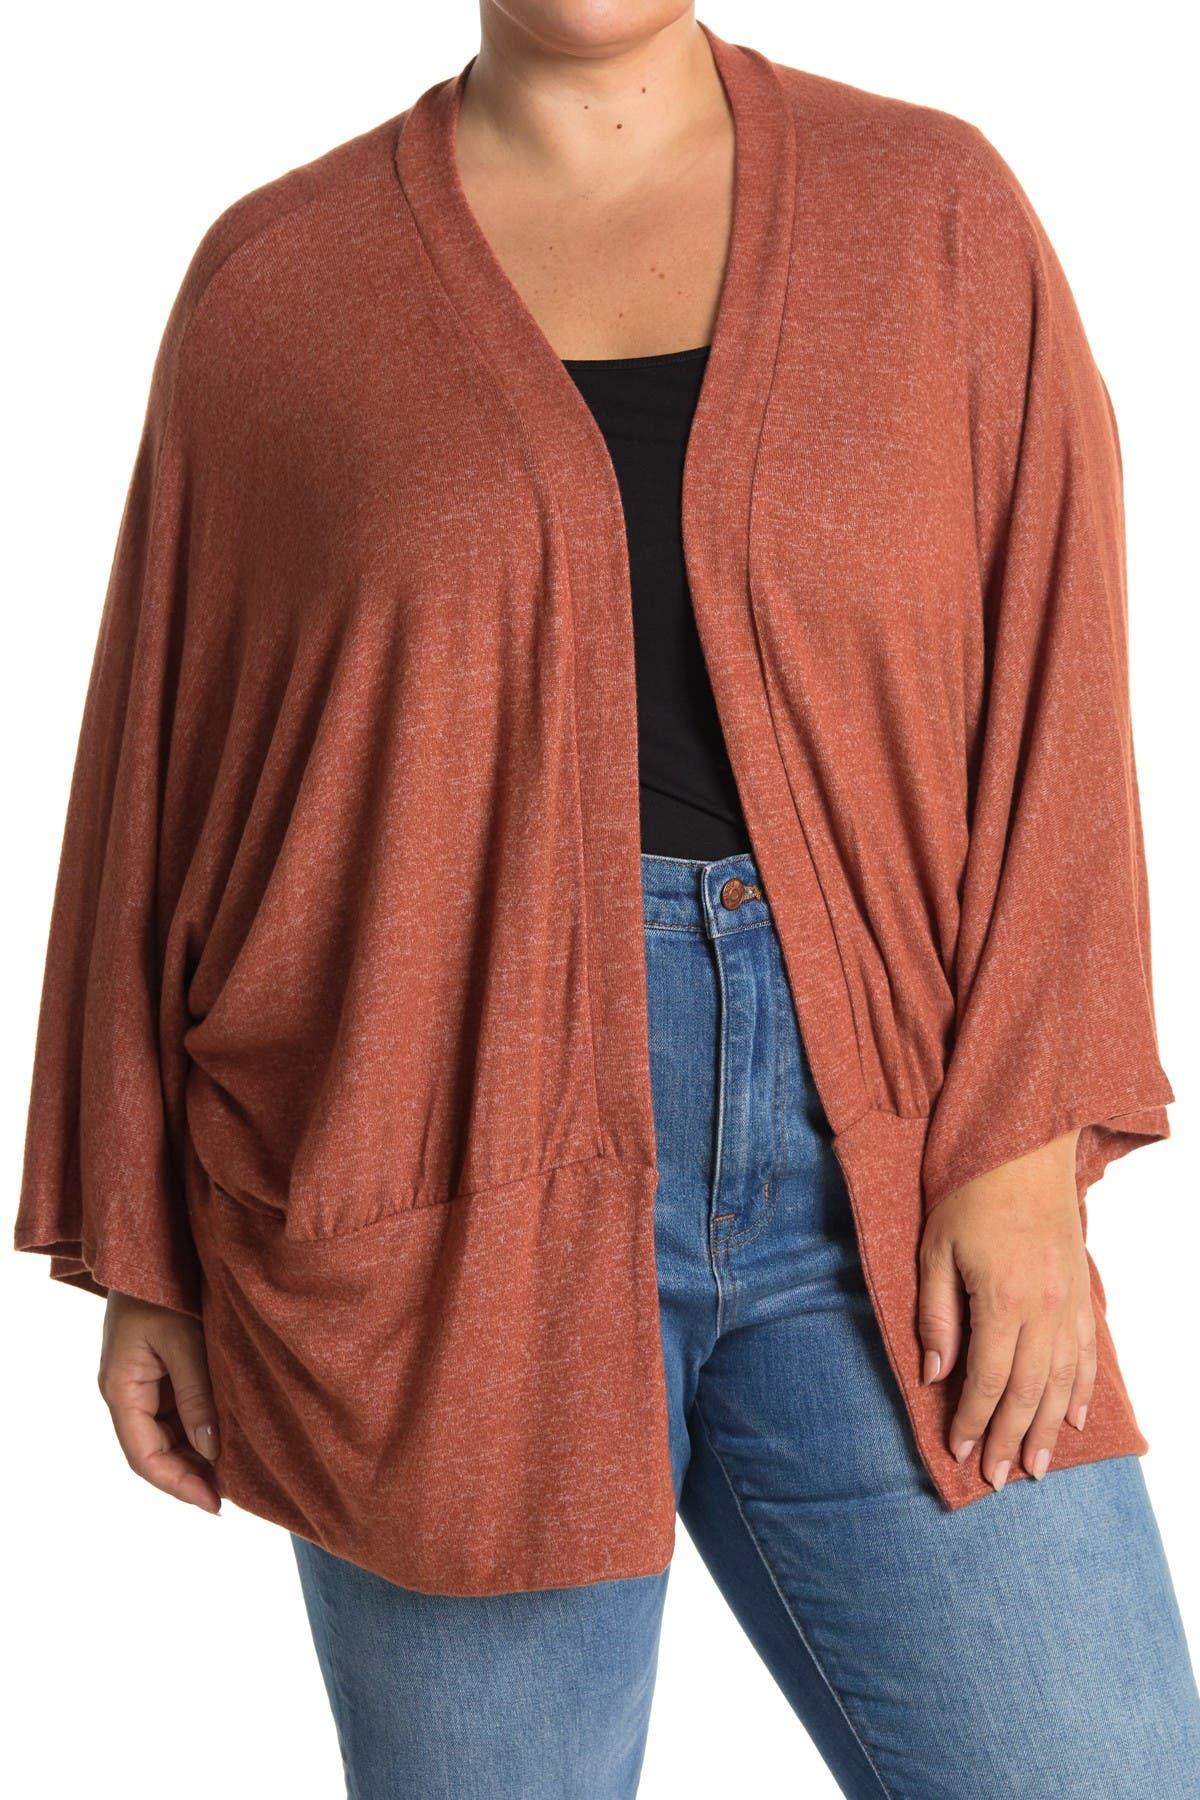 Image of ALL IN FAVOR Two-Tone Hacci Cardigan Sweater